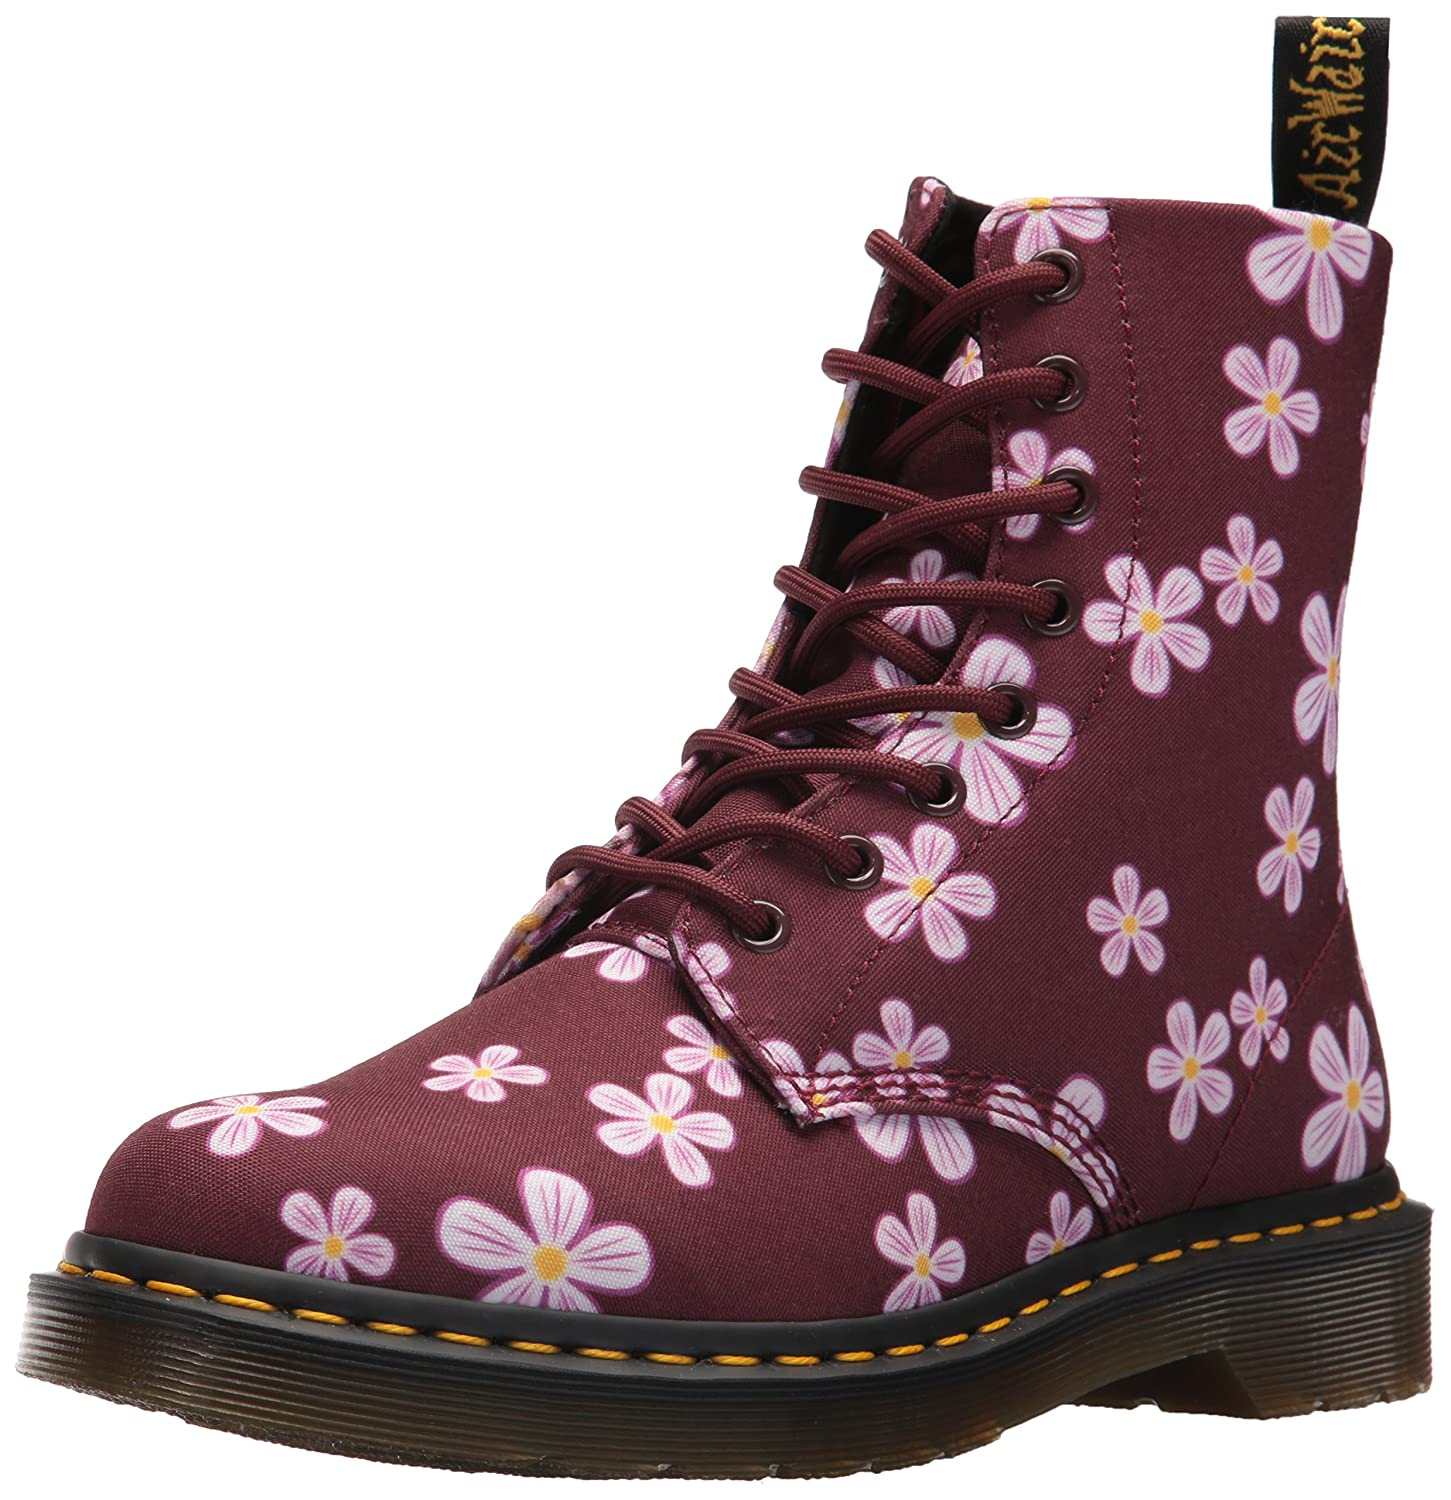 Dr. Women's Page Meadow Cherry Fashion Boot B071DT5YKZ